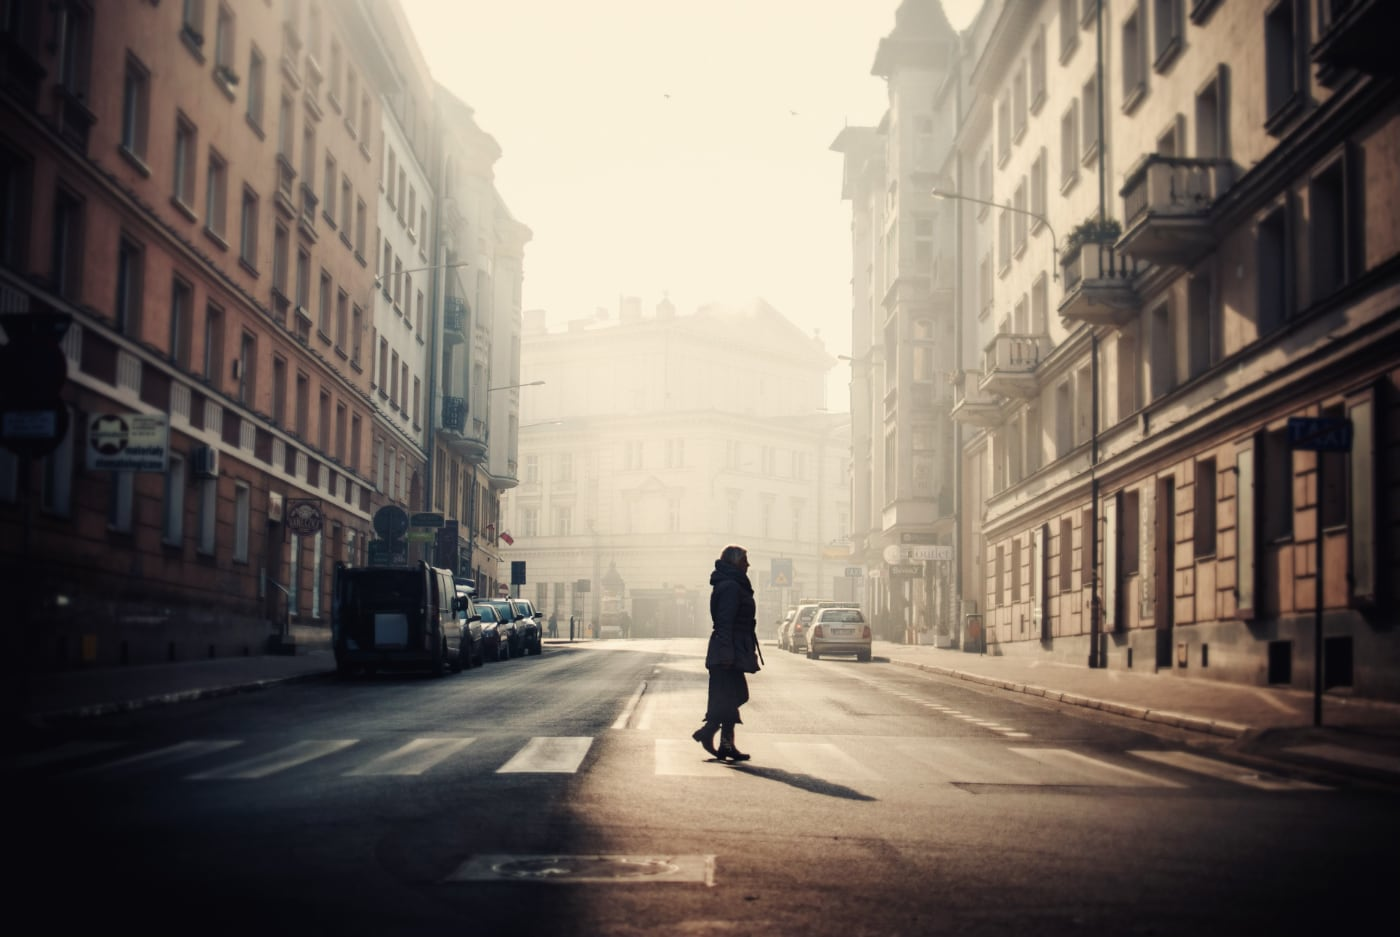 person-middle-streets-poznan-surrounded-by-old-buildings-captured-poland